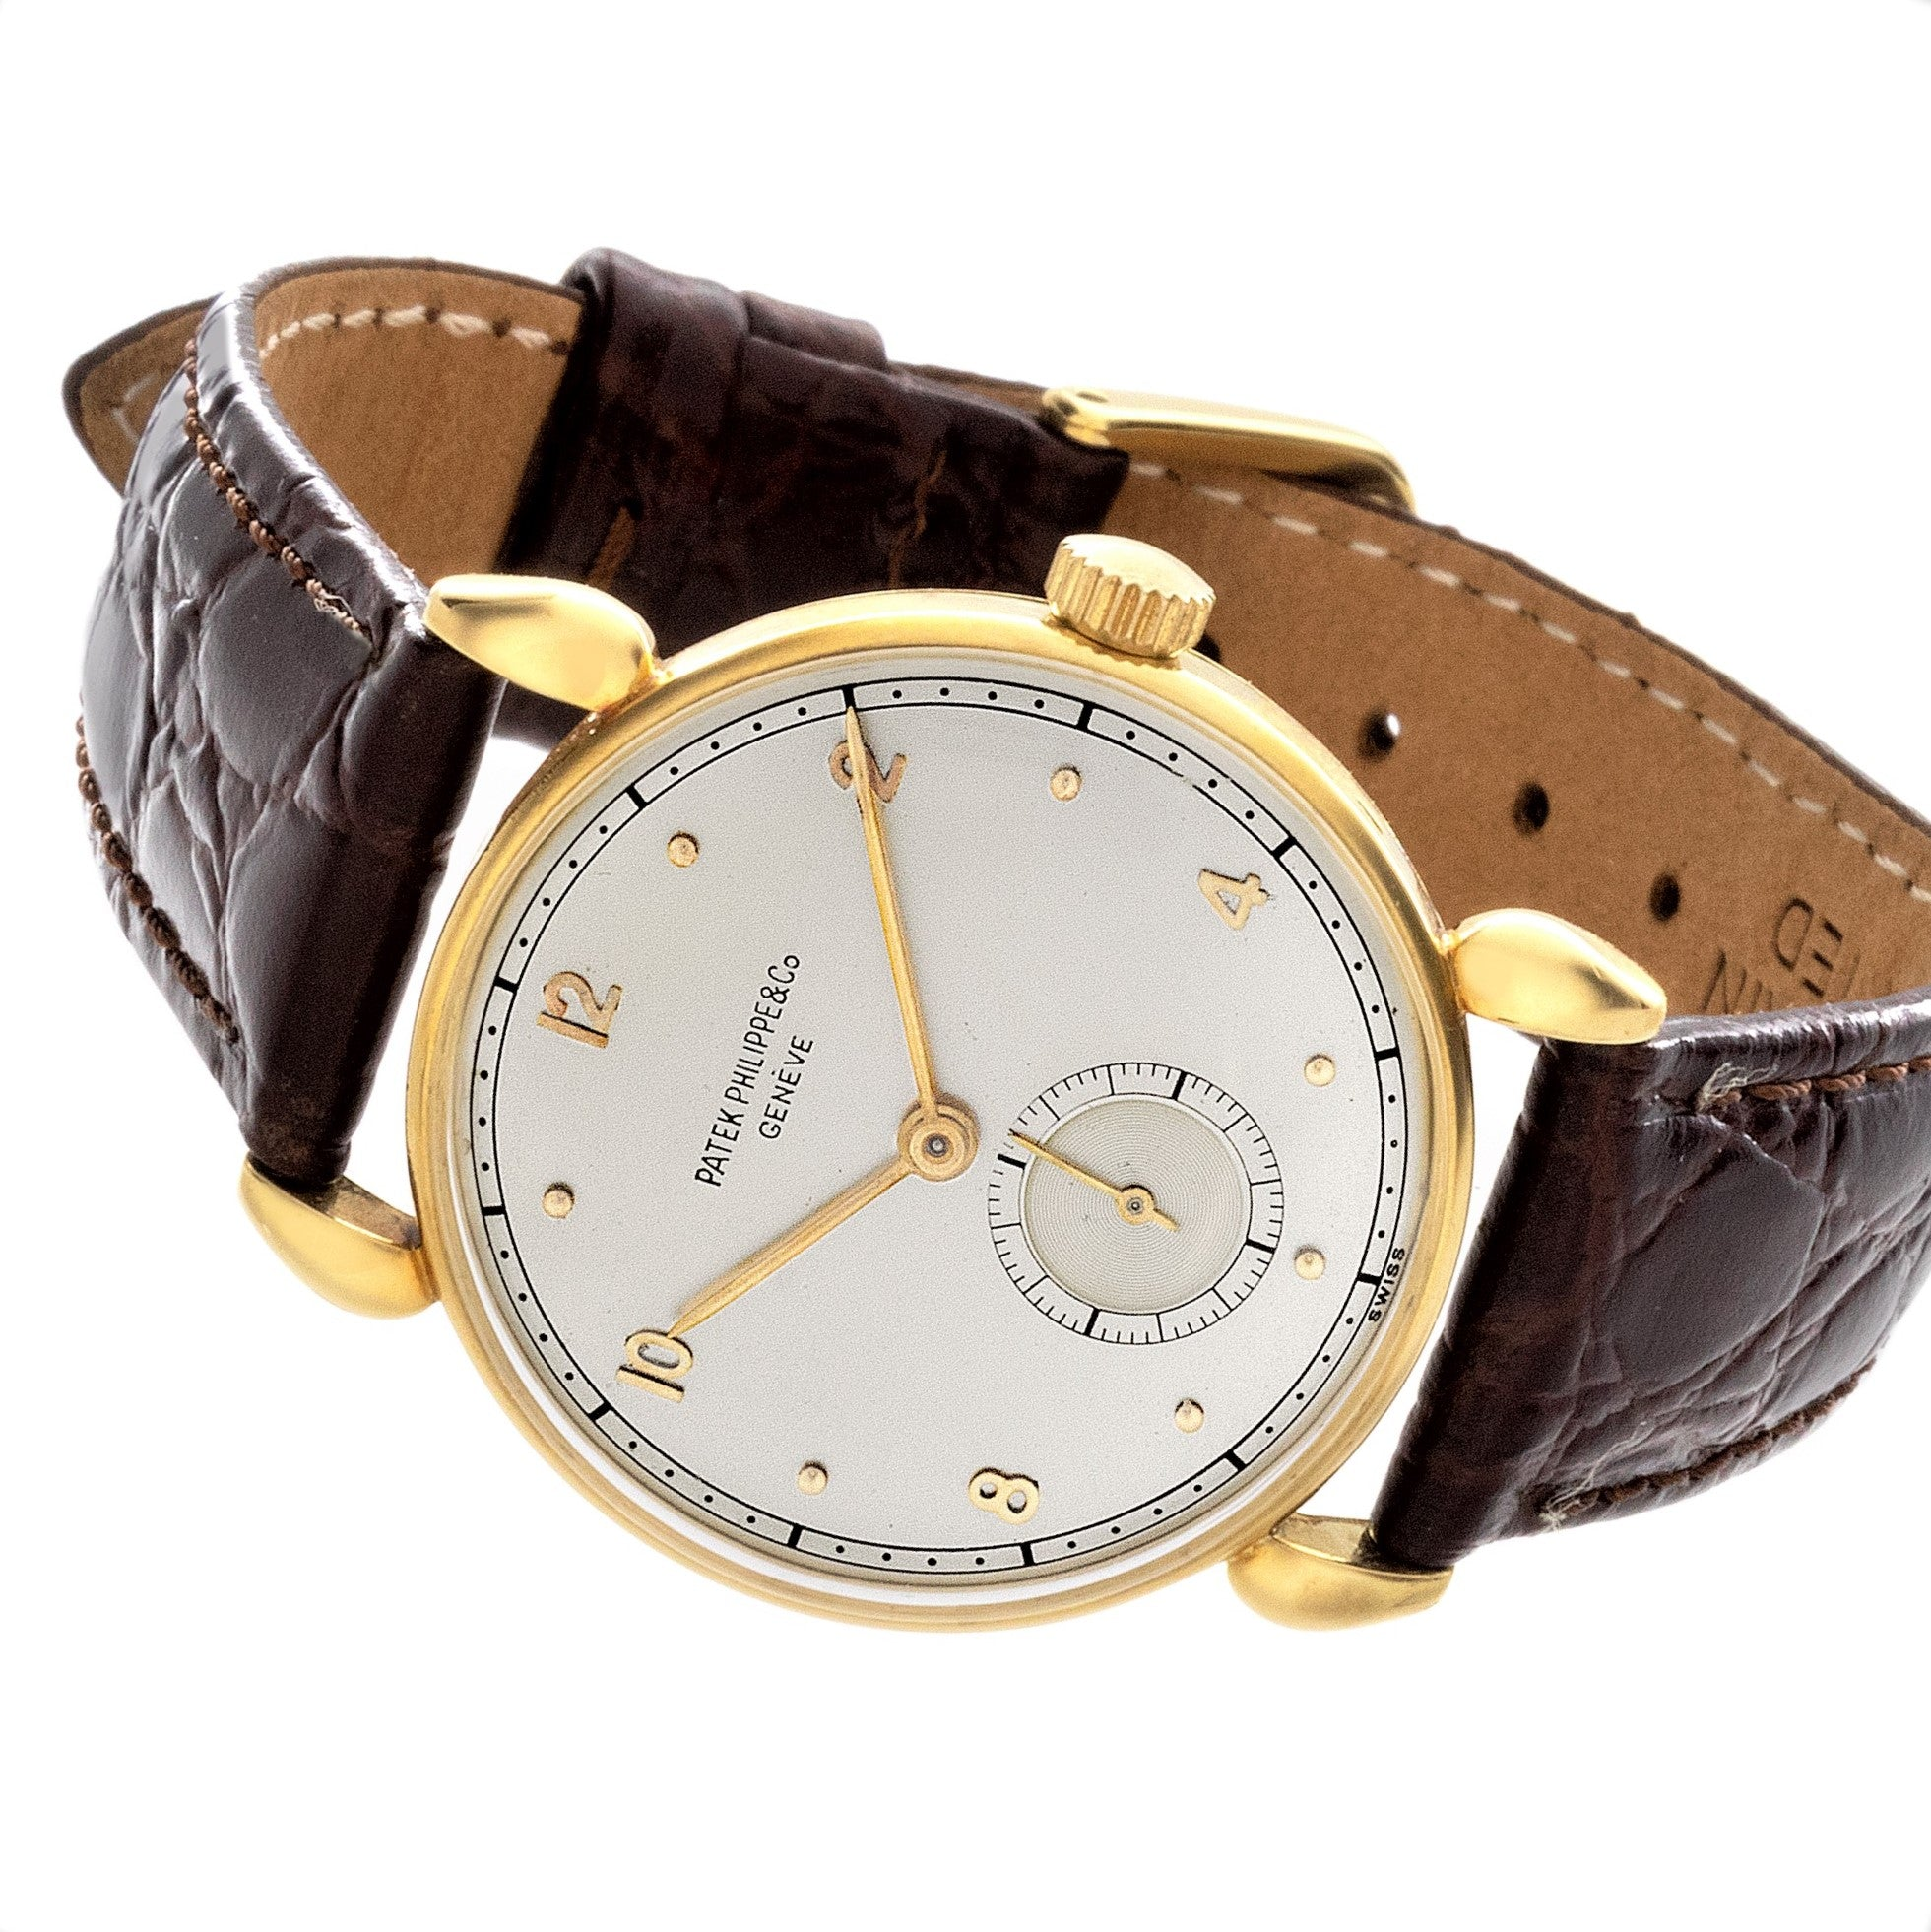 Patek Philippe 590J Calatrava Watch